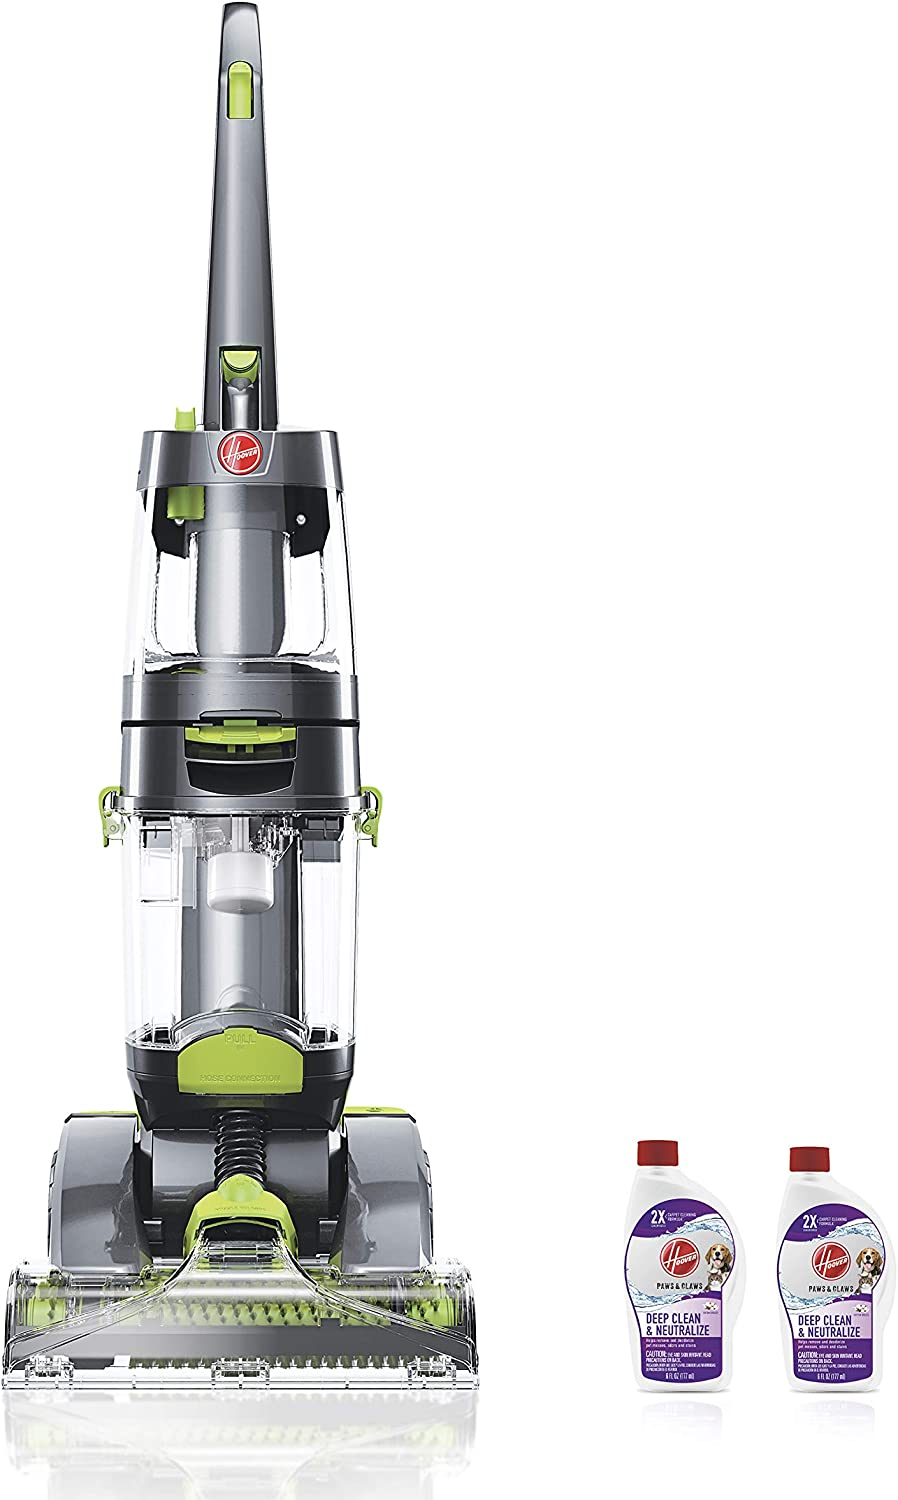 Cash special price Hoover Pro Clean Pet Upright Outstanding Machine Carpet Shampooer Cleaner f